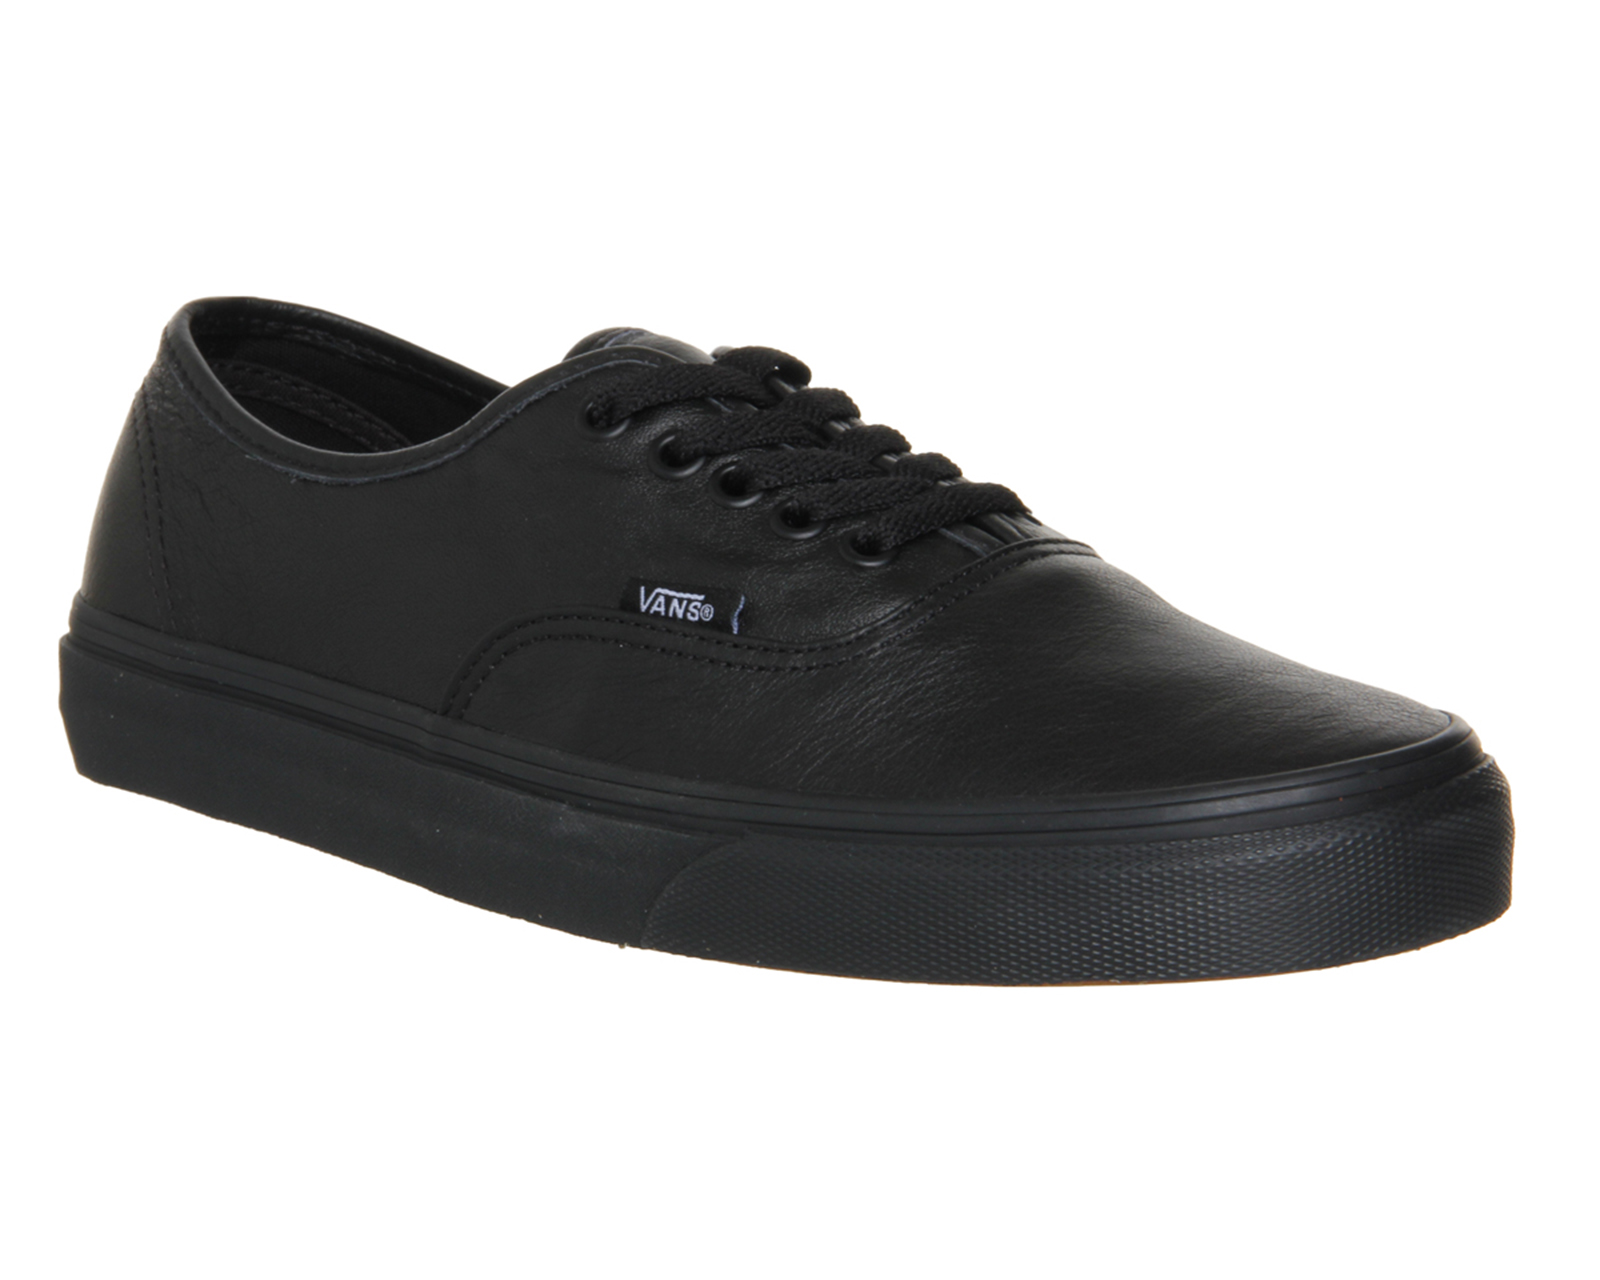 18b89d867ccc Sentinel Mens Vans Authentic Leather BLACK MONO Trainers Shoes